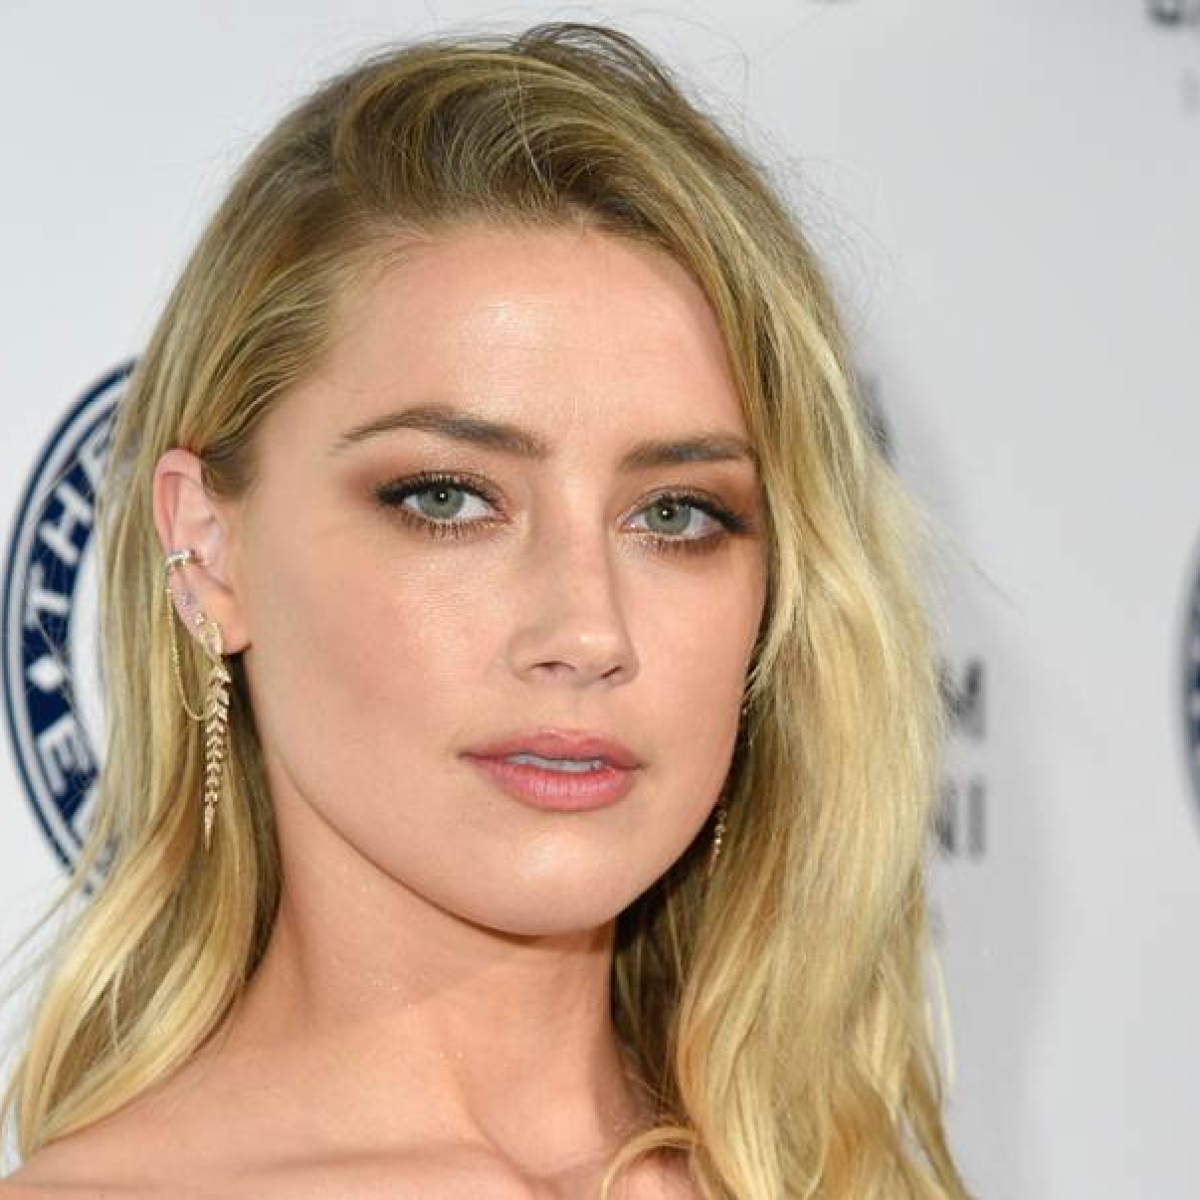 Amber Heard responds to calls for her removal from 'Aquaman 2'